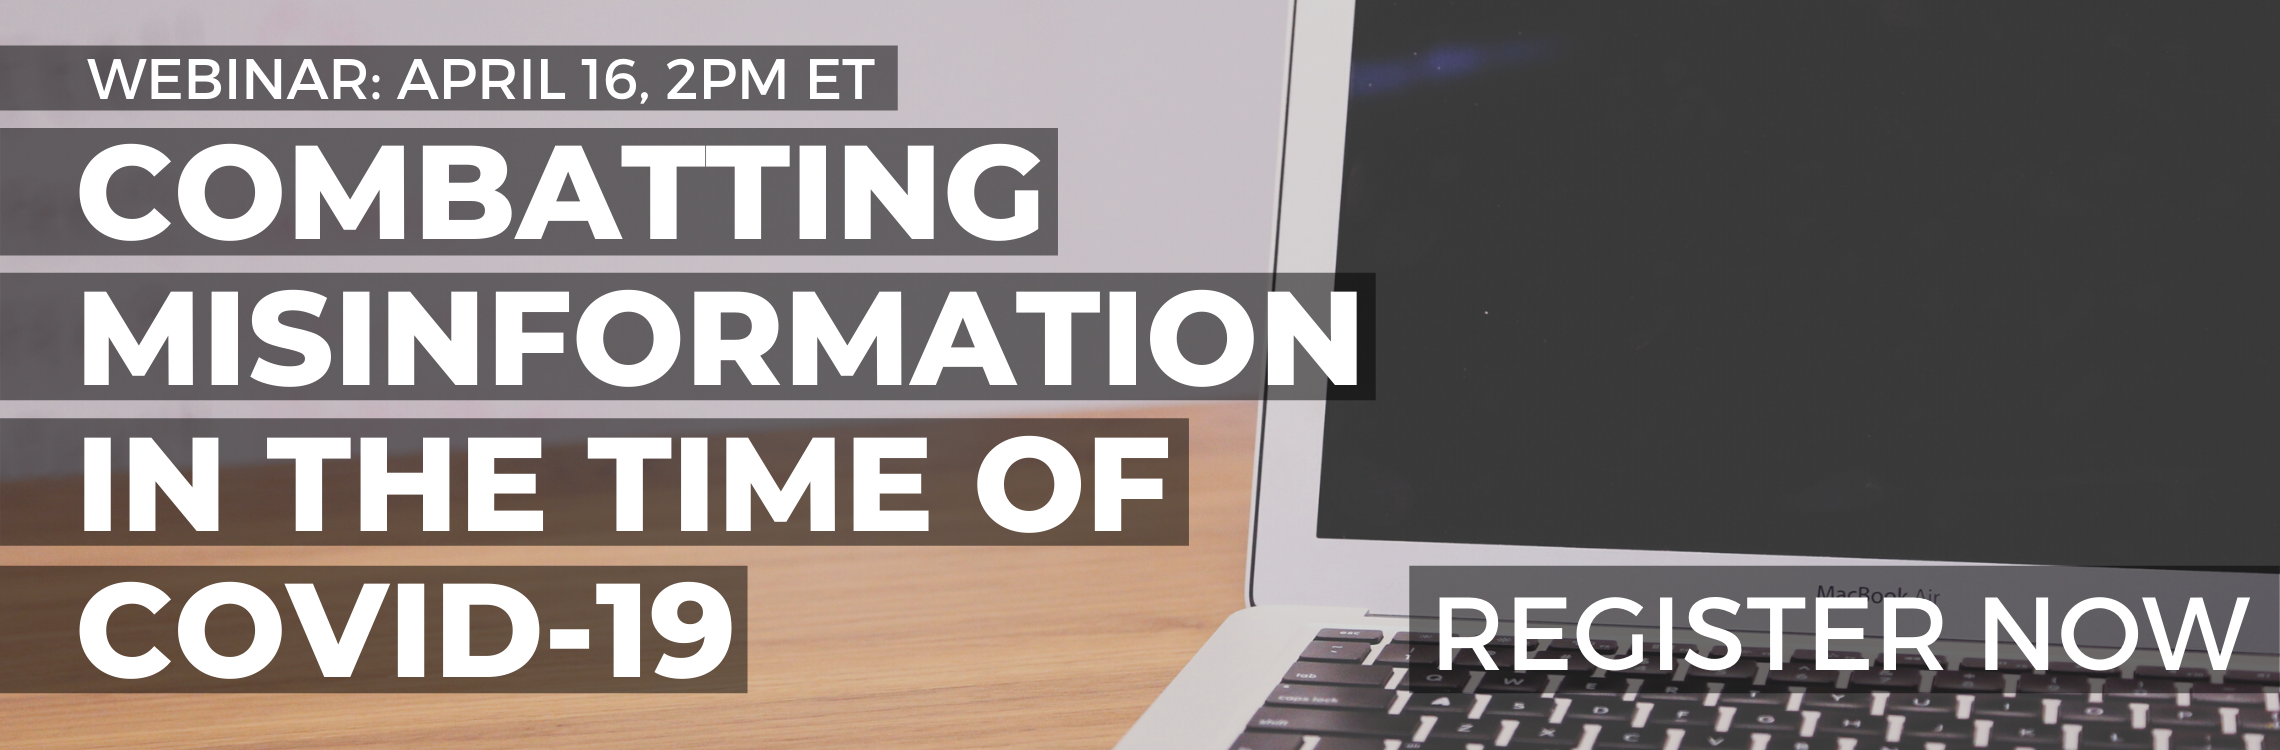 Webinar: April 16, 2PM ET. Combatting misinformation in the time of COVID-19